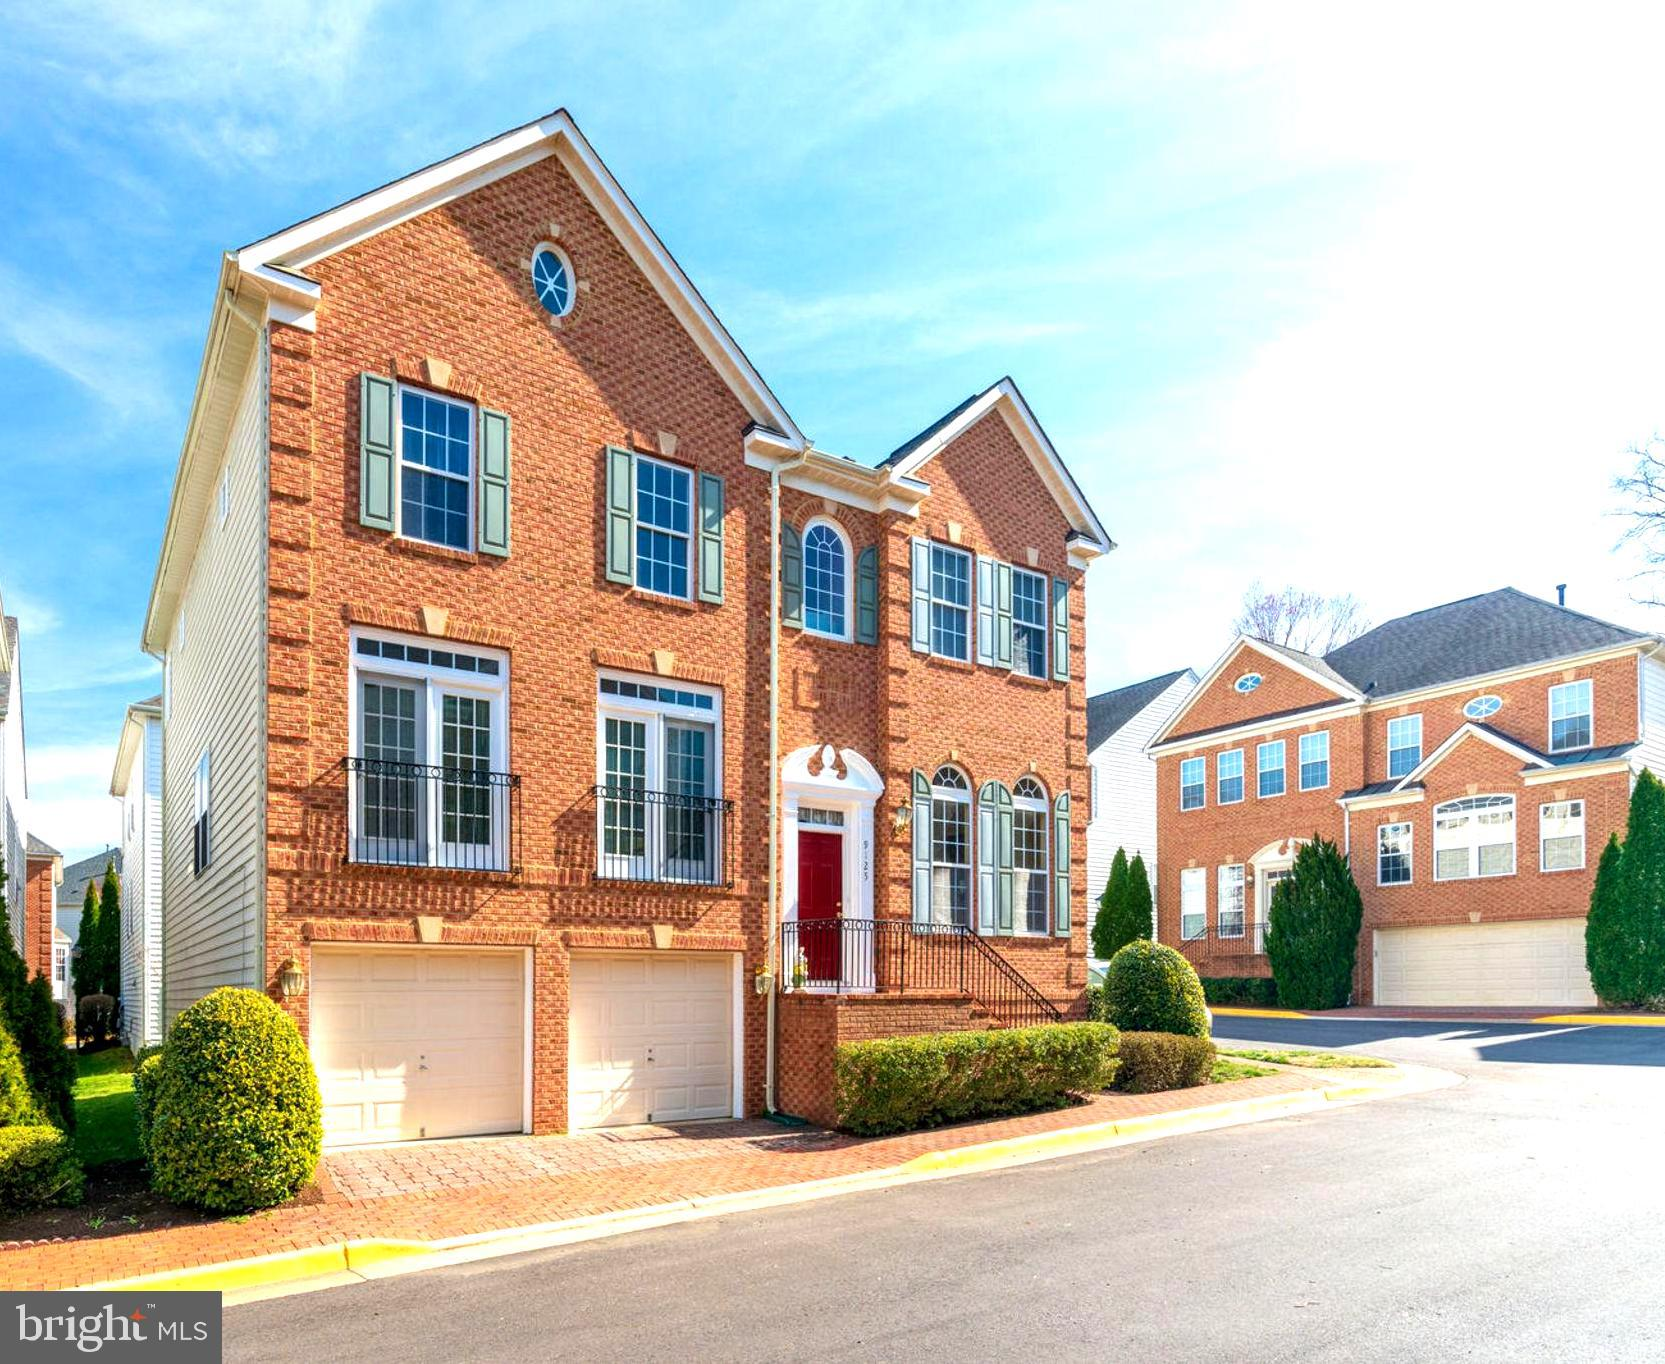 9125 LAKE TOWER LANE, FORT BELVOIR, VA 22060